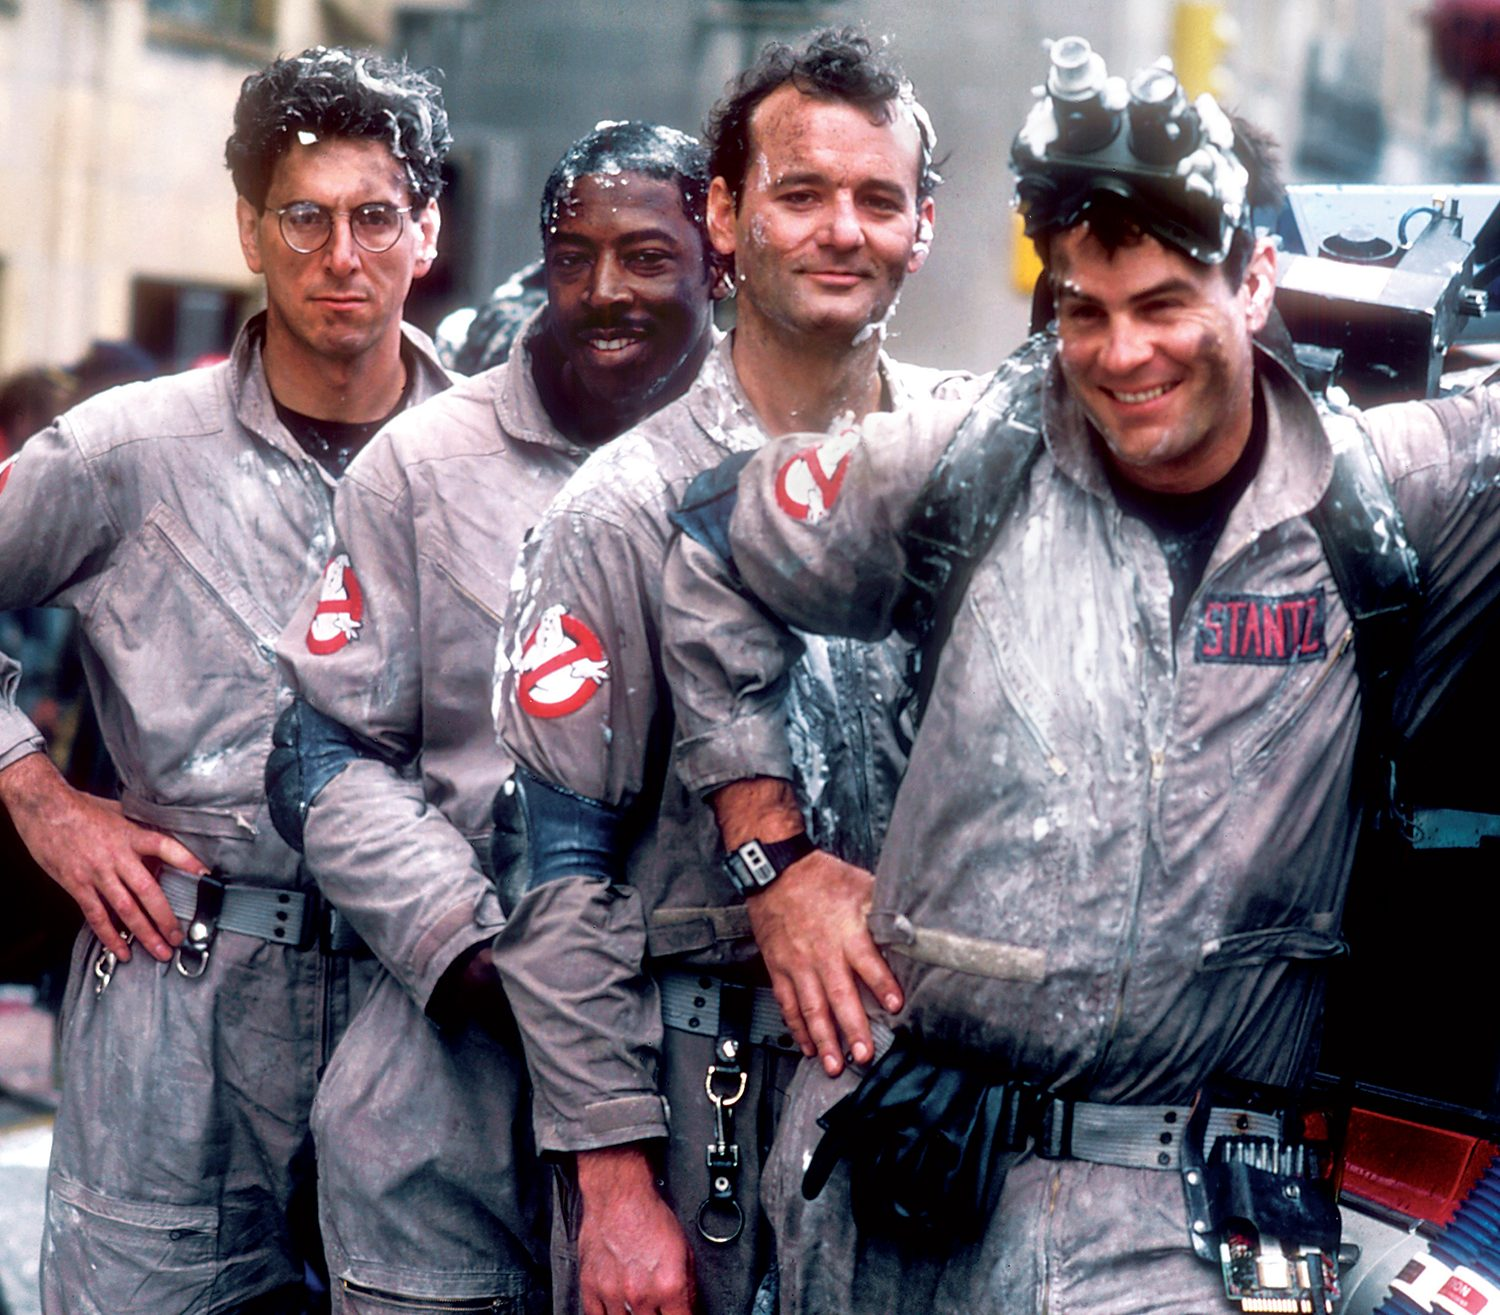 1 321 e1608558599589 20 Things You May Have Missed In Ghostbusters